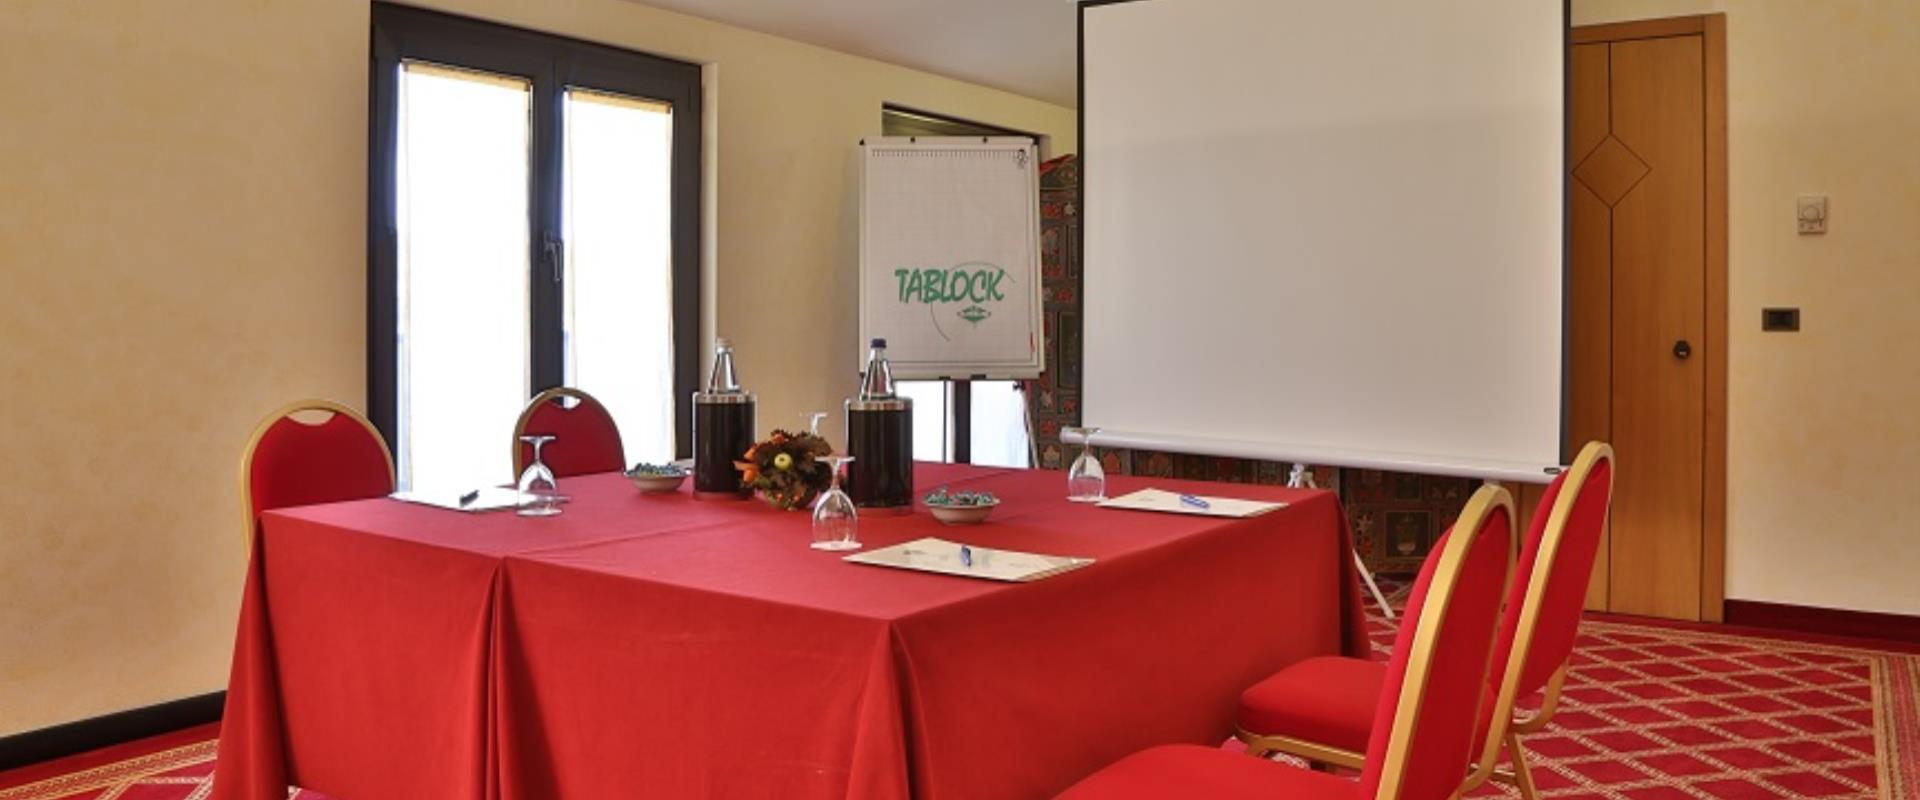 The BW Hotel Mirage Milan features elegant and functional meeting room